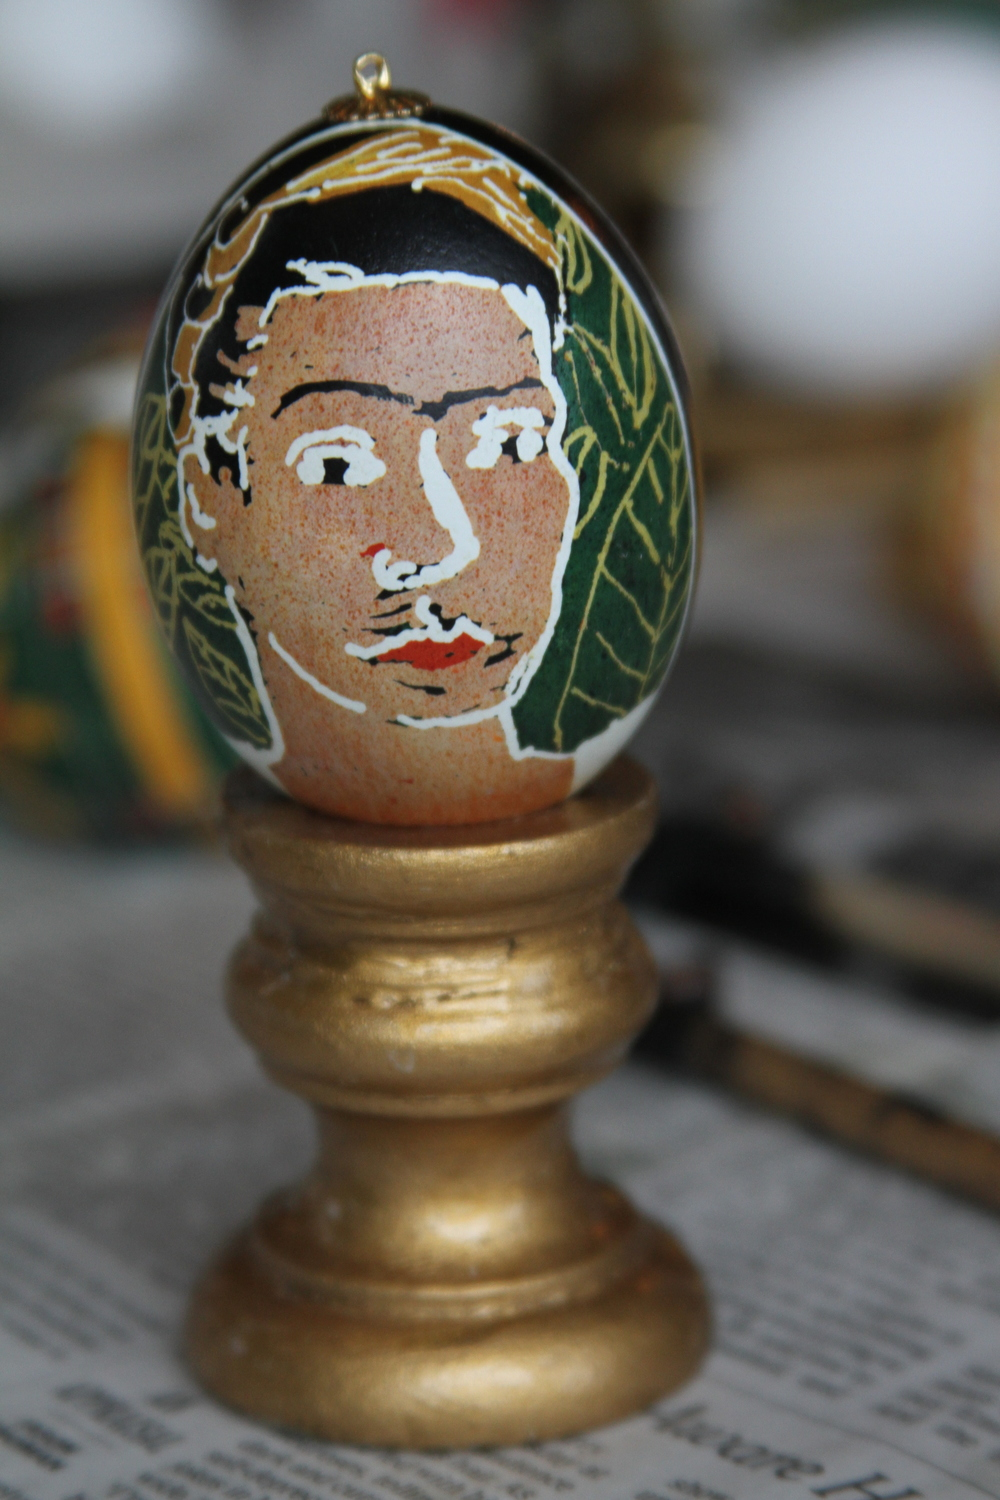 My First Egg of this Year: Frida Kahlo (who else)!